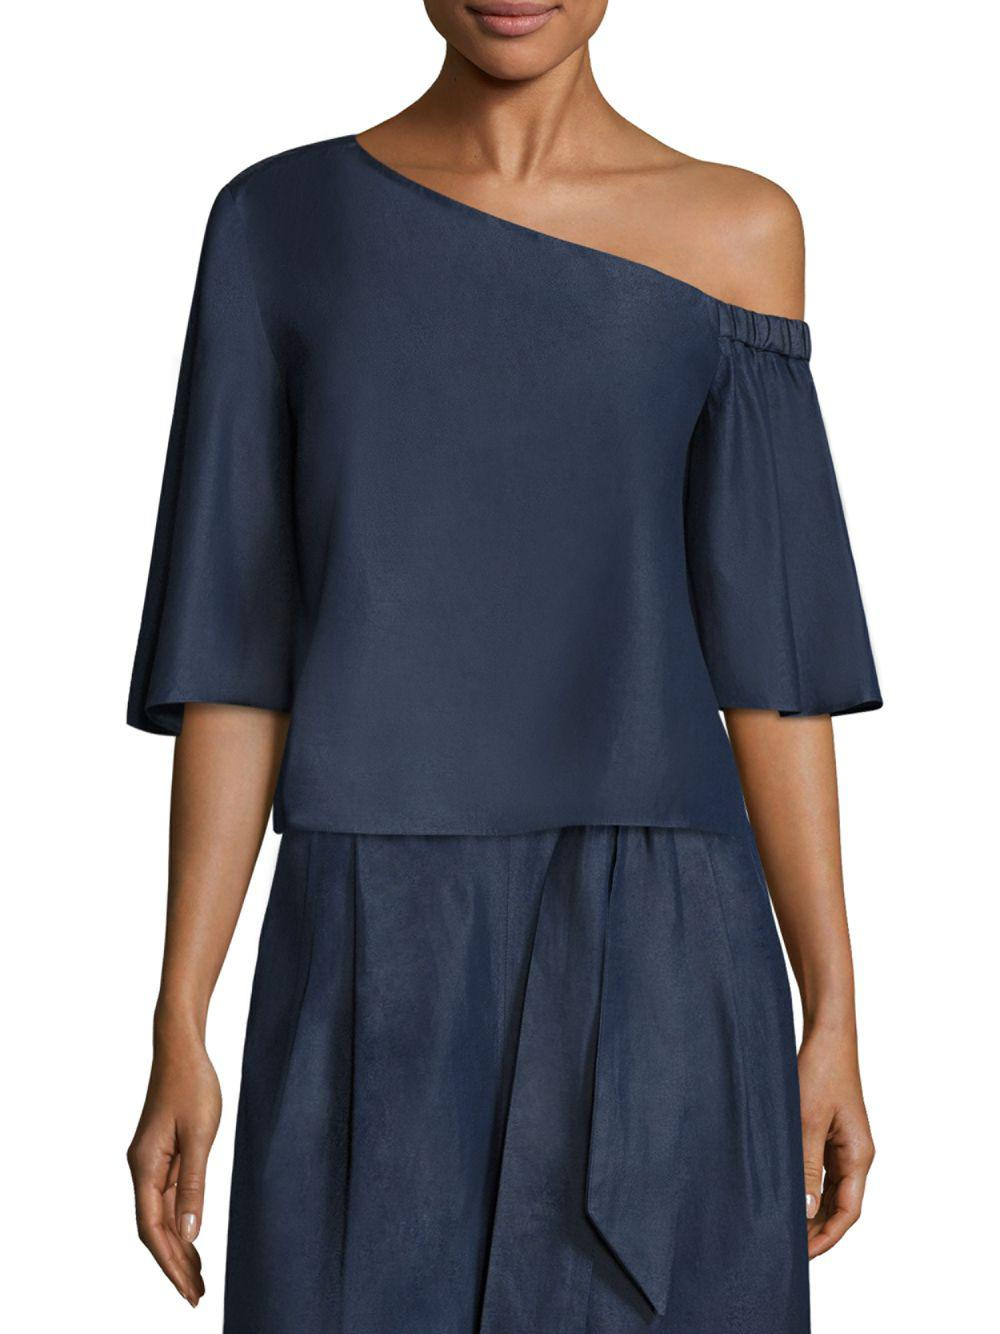 db684ce88e8b5 Lyst - Tibi One-shoulder Cotton Top in Blue - Save 13%